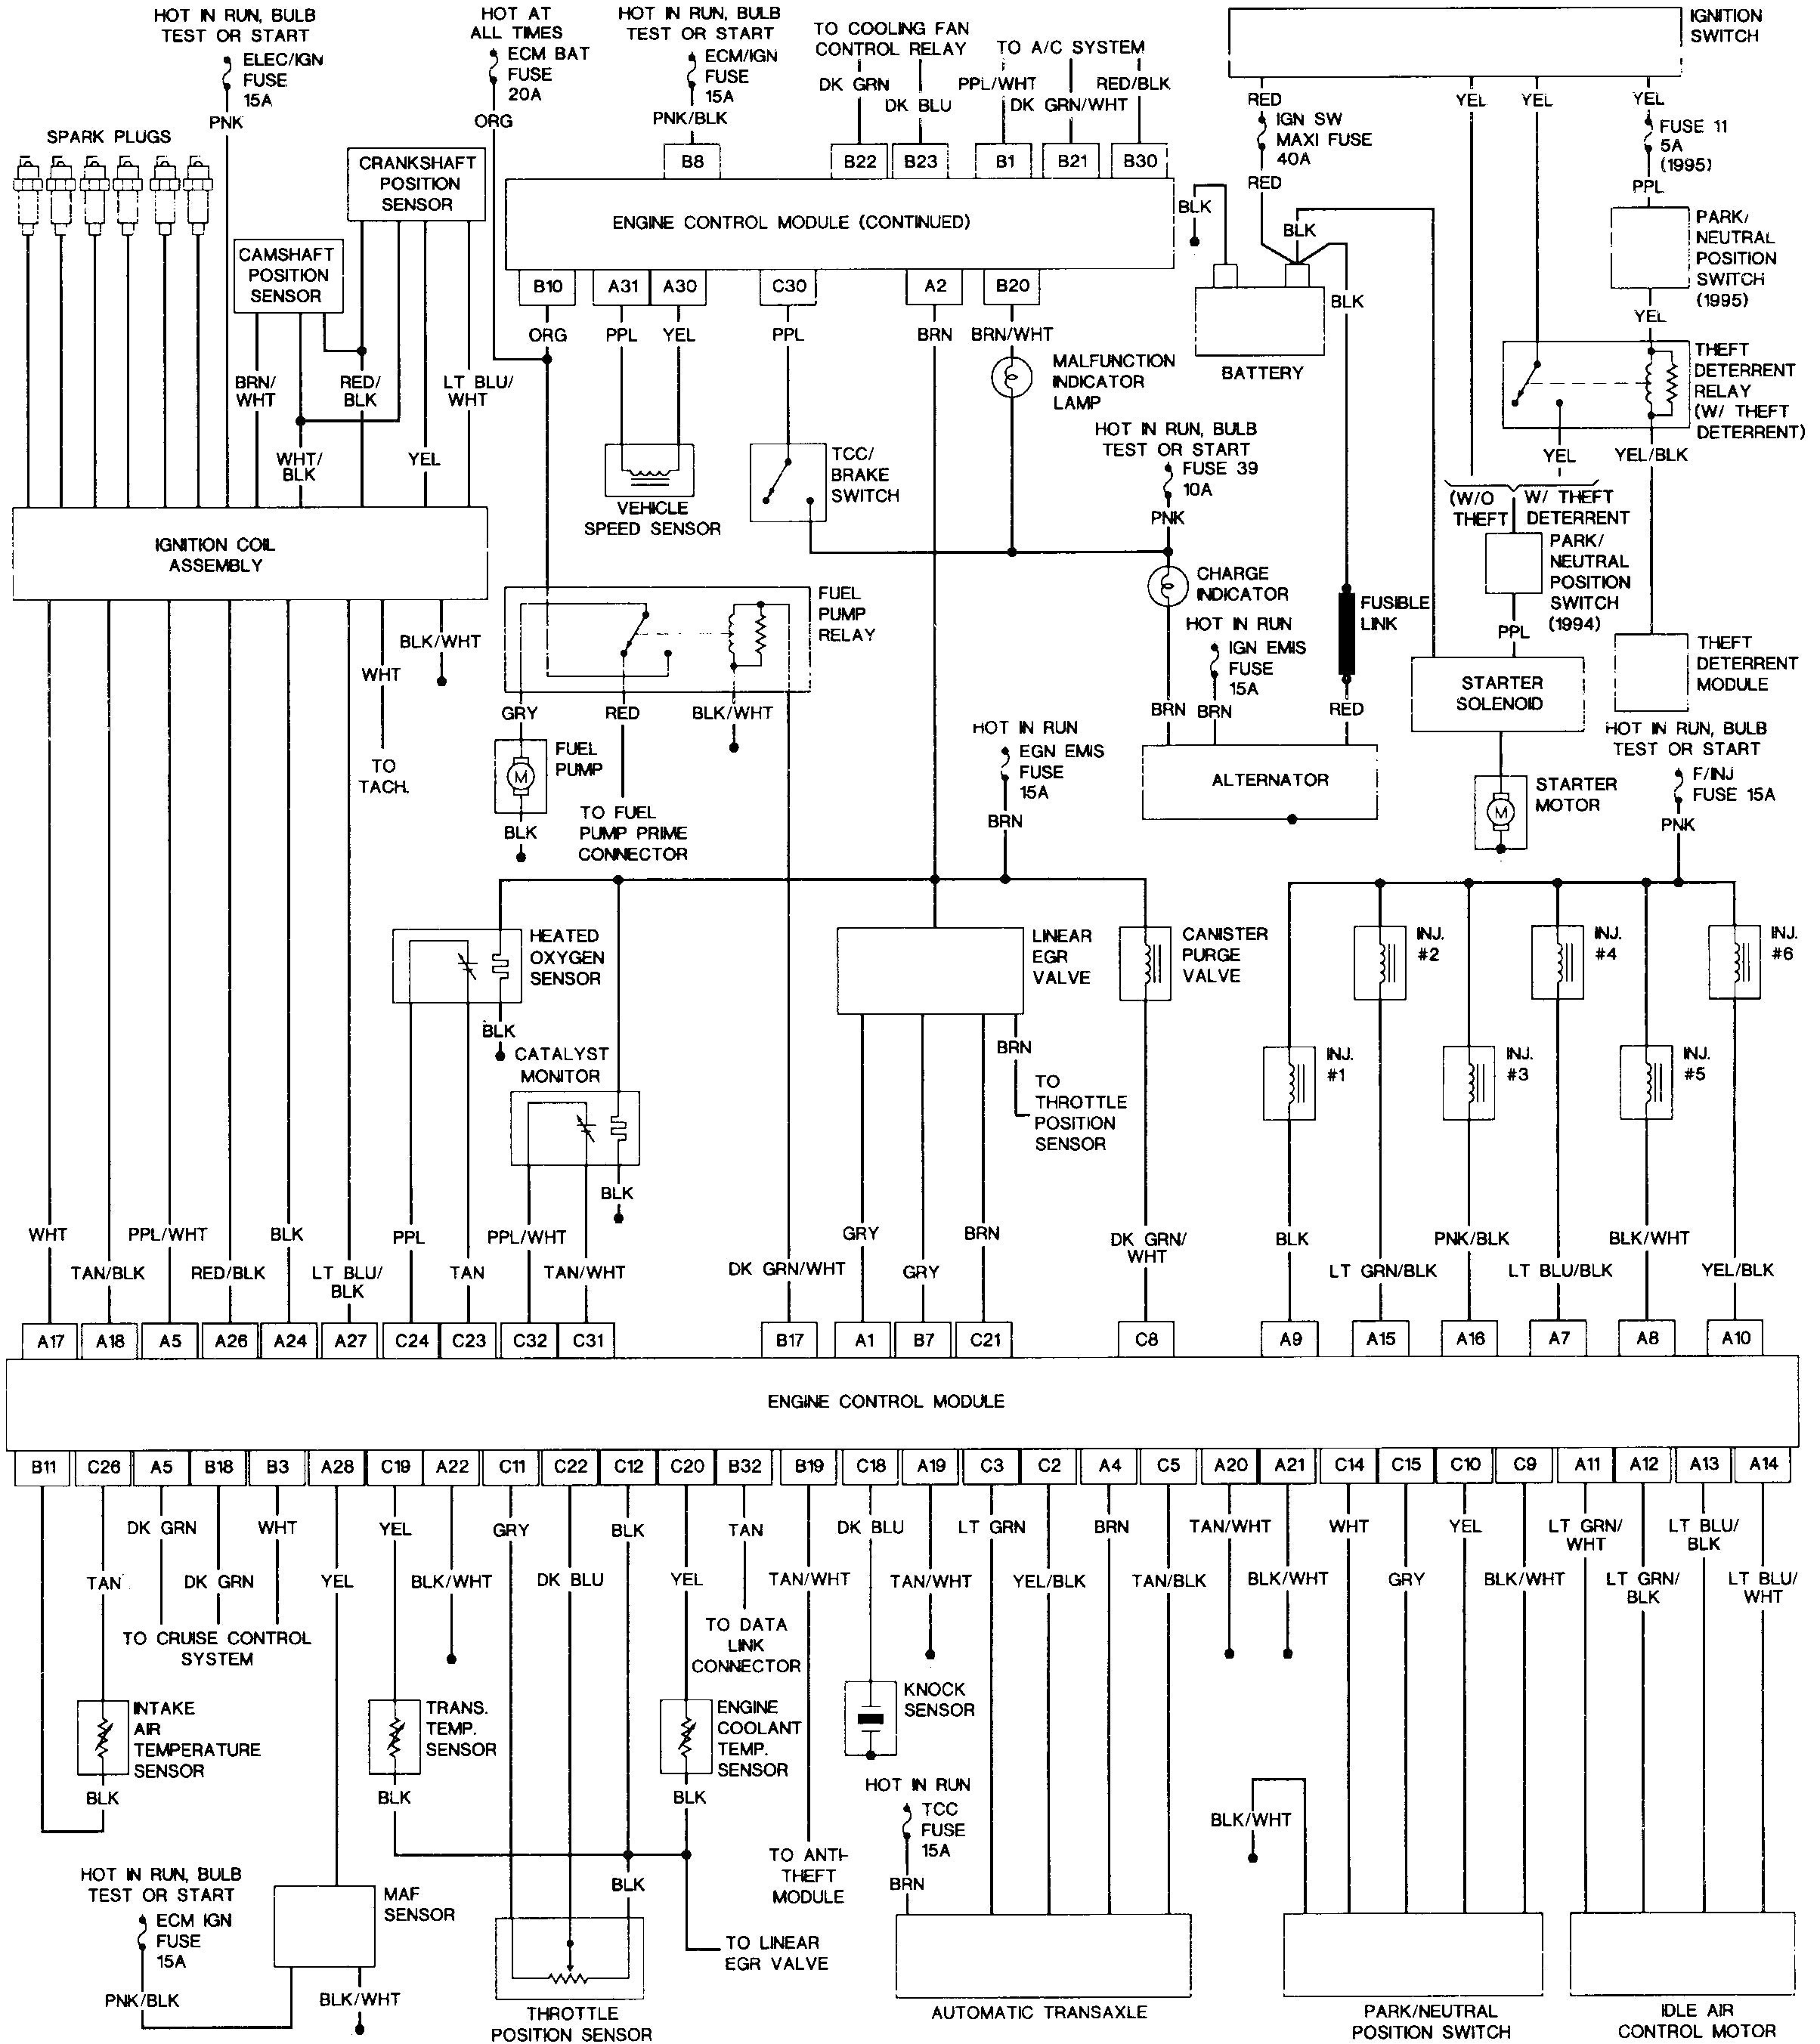 wiring diagram for 2004 buick regal wiring diagram all data rh 3 14 19 feuerwehr randegg de 2004 Buick LeSabre Fuse Box Diagram 2004 Buick Rendezvous